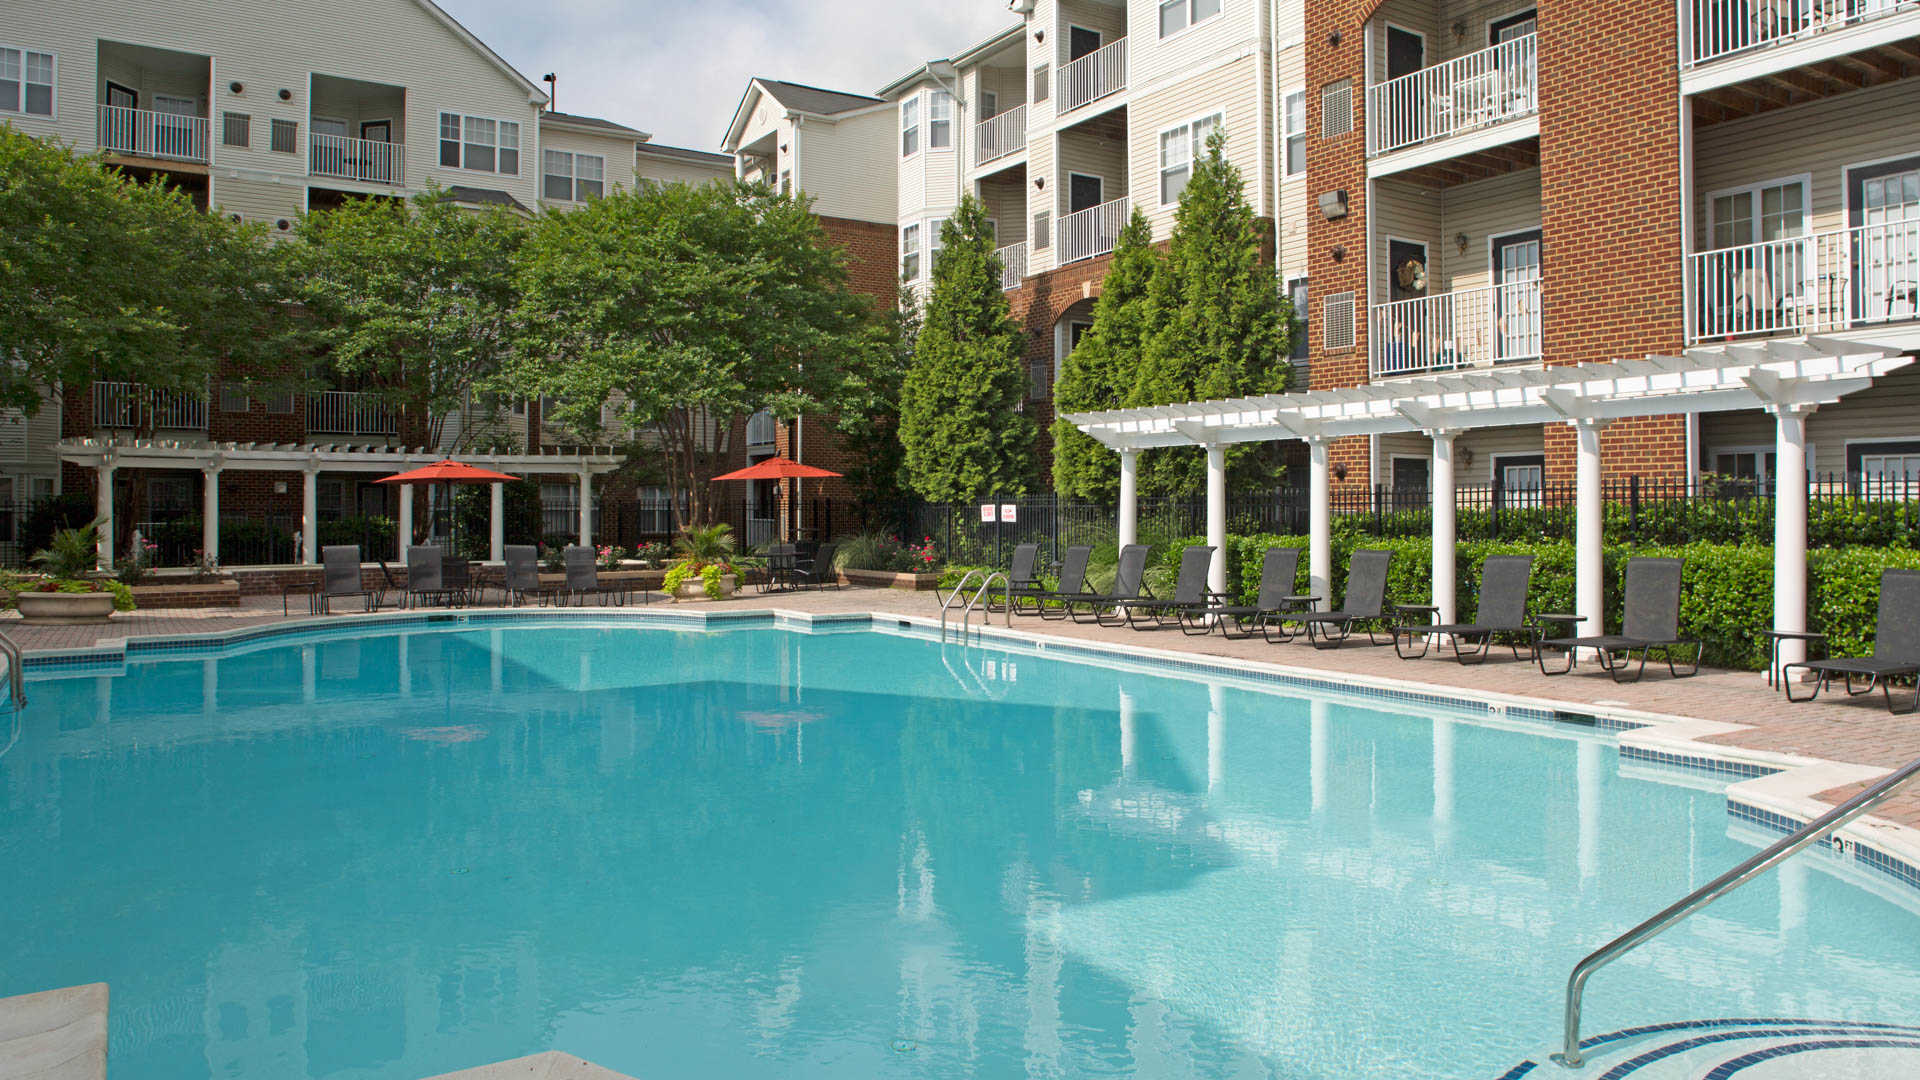 Charming Reserve At Potomac Yard Apartments Reviews In Alexandria   3700 Jefferson  Davis Hwy | EquityApartments.com